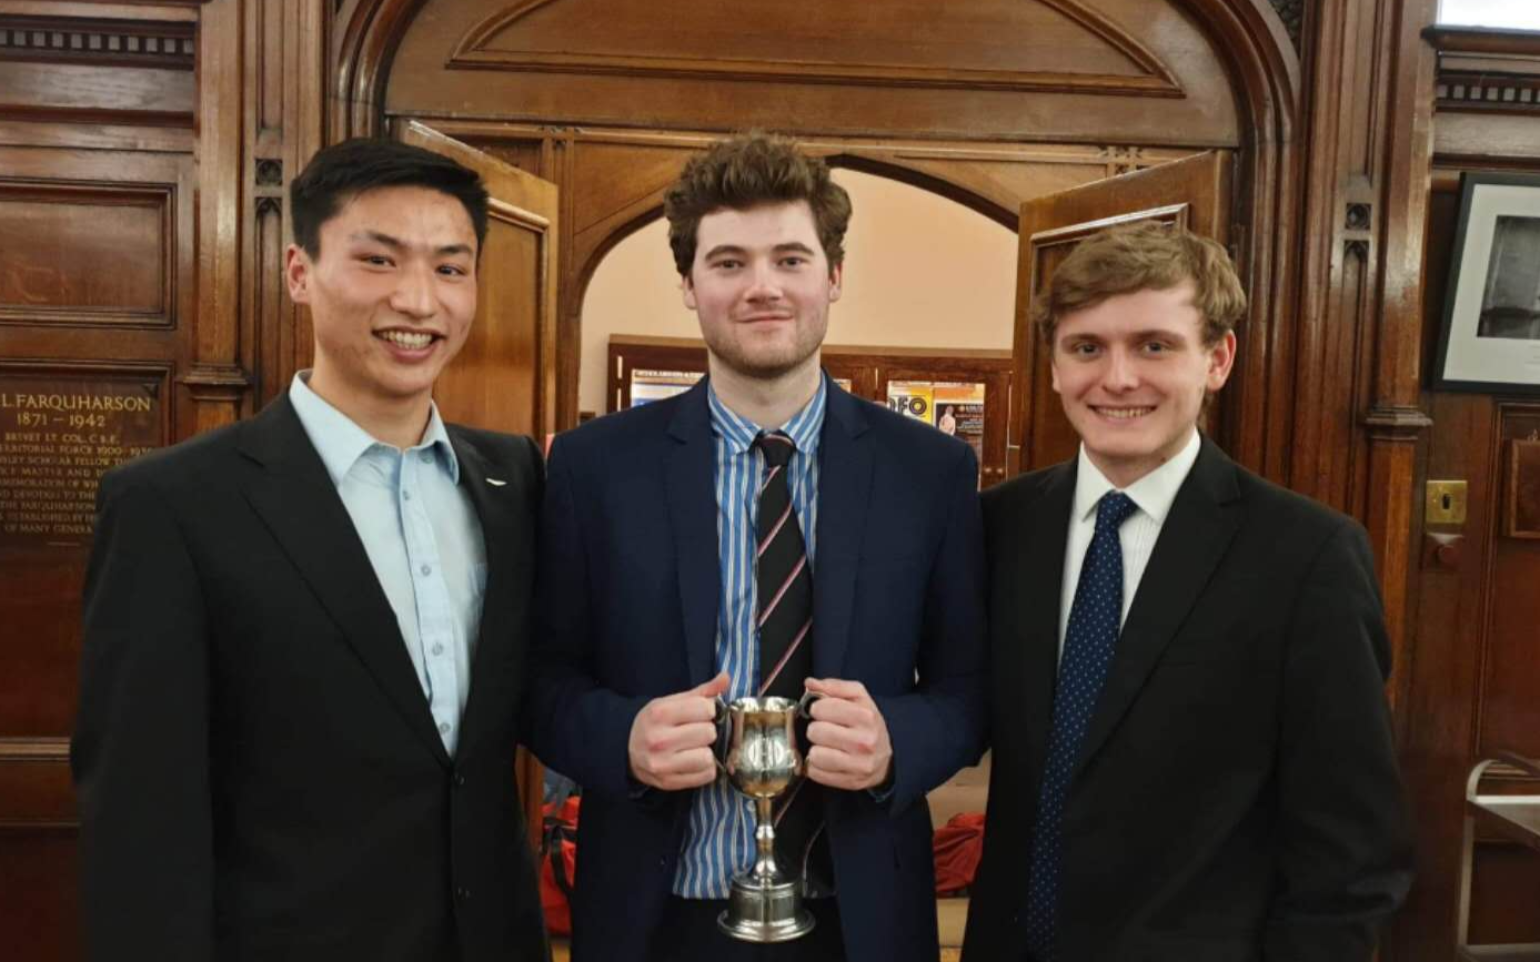 3 students at St Anne's College, Oxford University